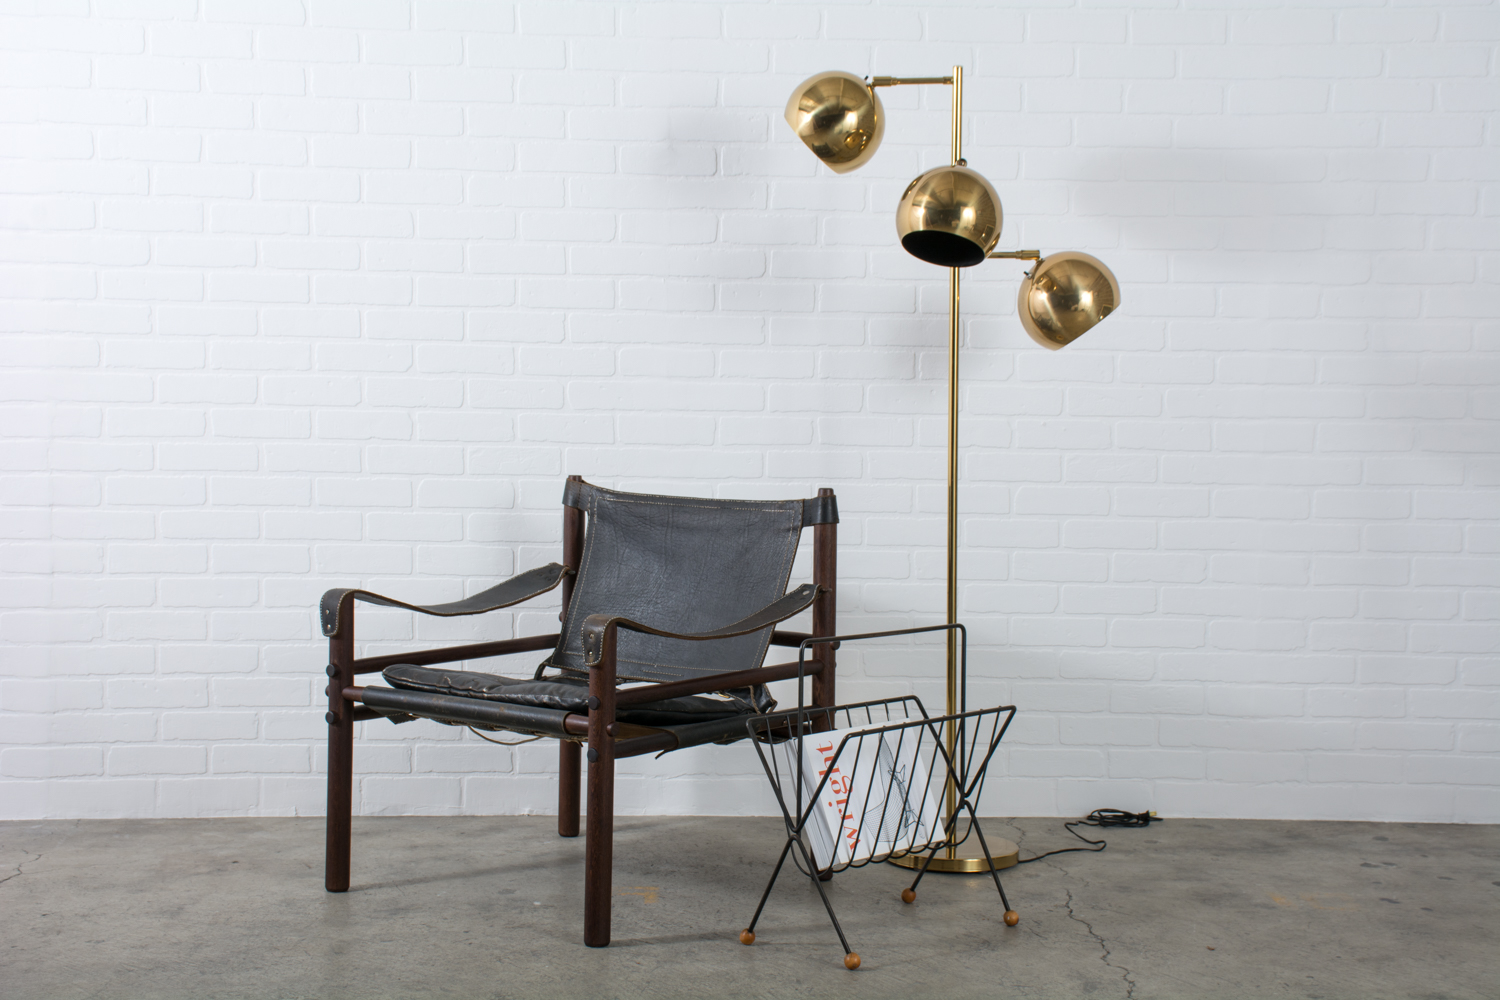 Arne Norell Vintage Mid-Century 'Sirocco' Safari Chair, Mid-Century Modern Tony Paul Magazine Rack, and Mid-Century Brass Floor Lamp by Koch & Lowy